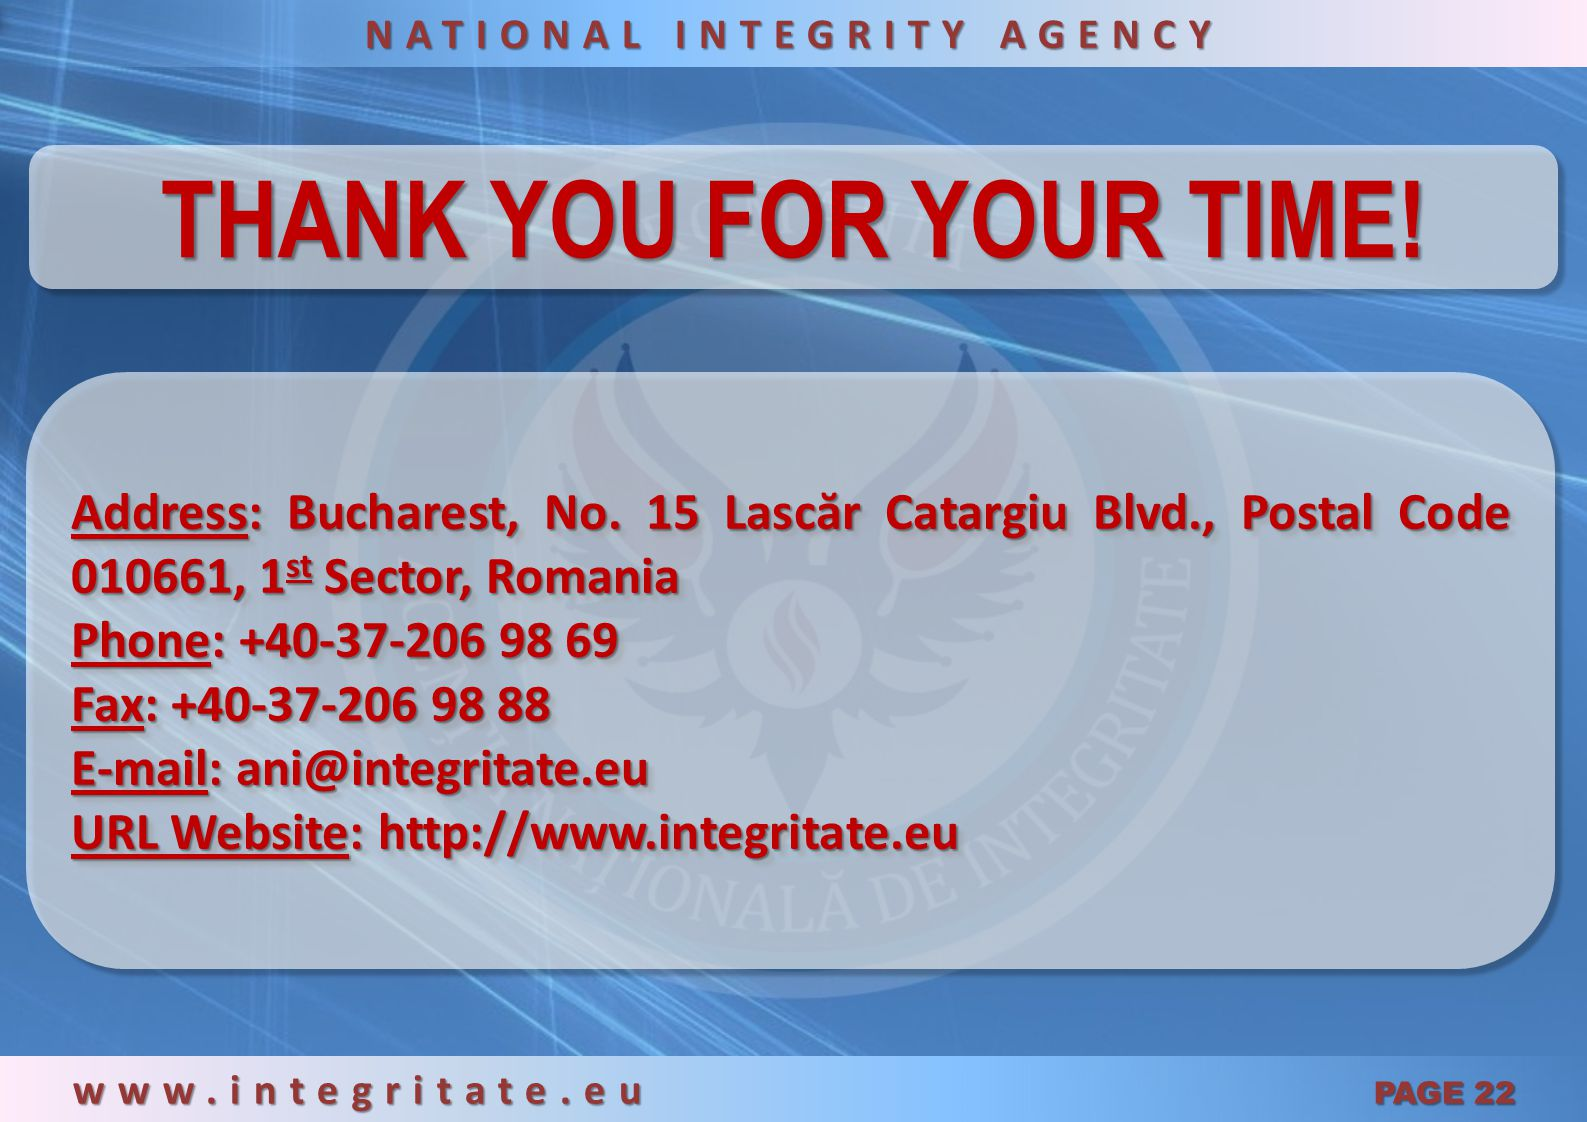 NATIONAL INTEGRITY AGENCY www.integritate.eu PAGE 22